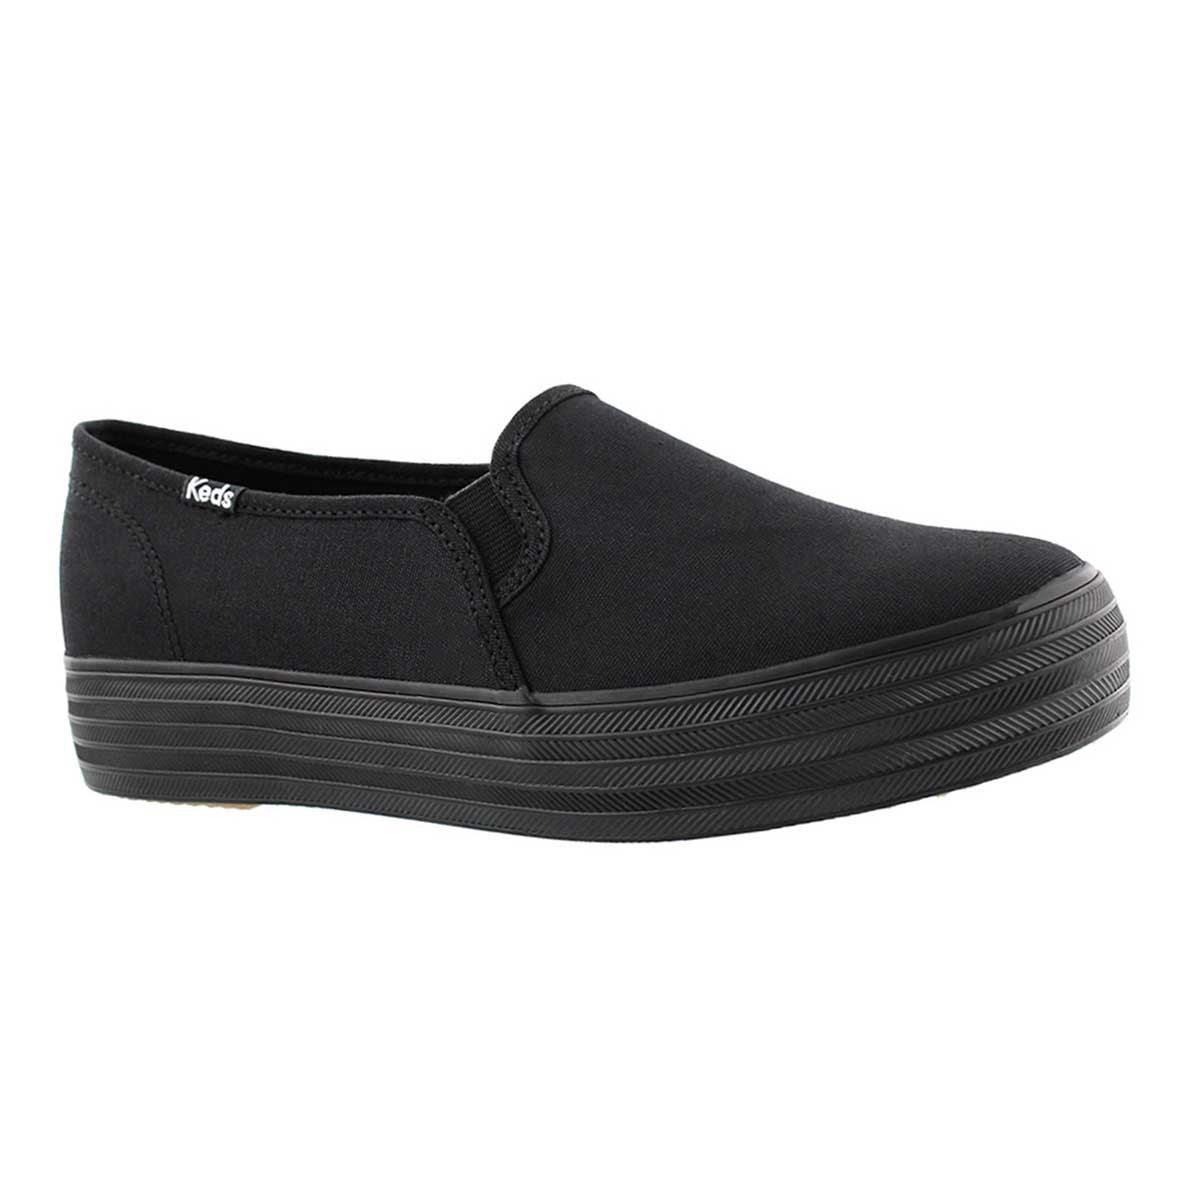 Women's TRIPLE DECKER black/black slip ons